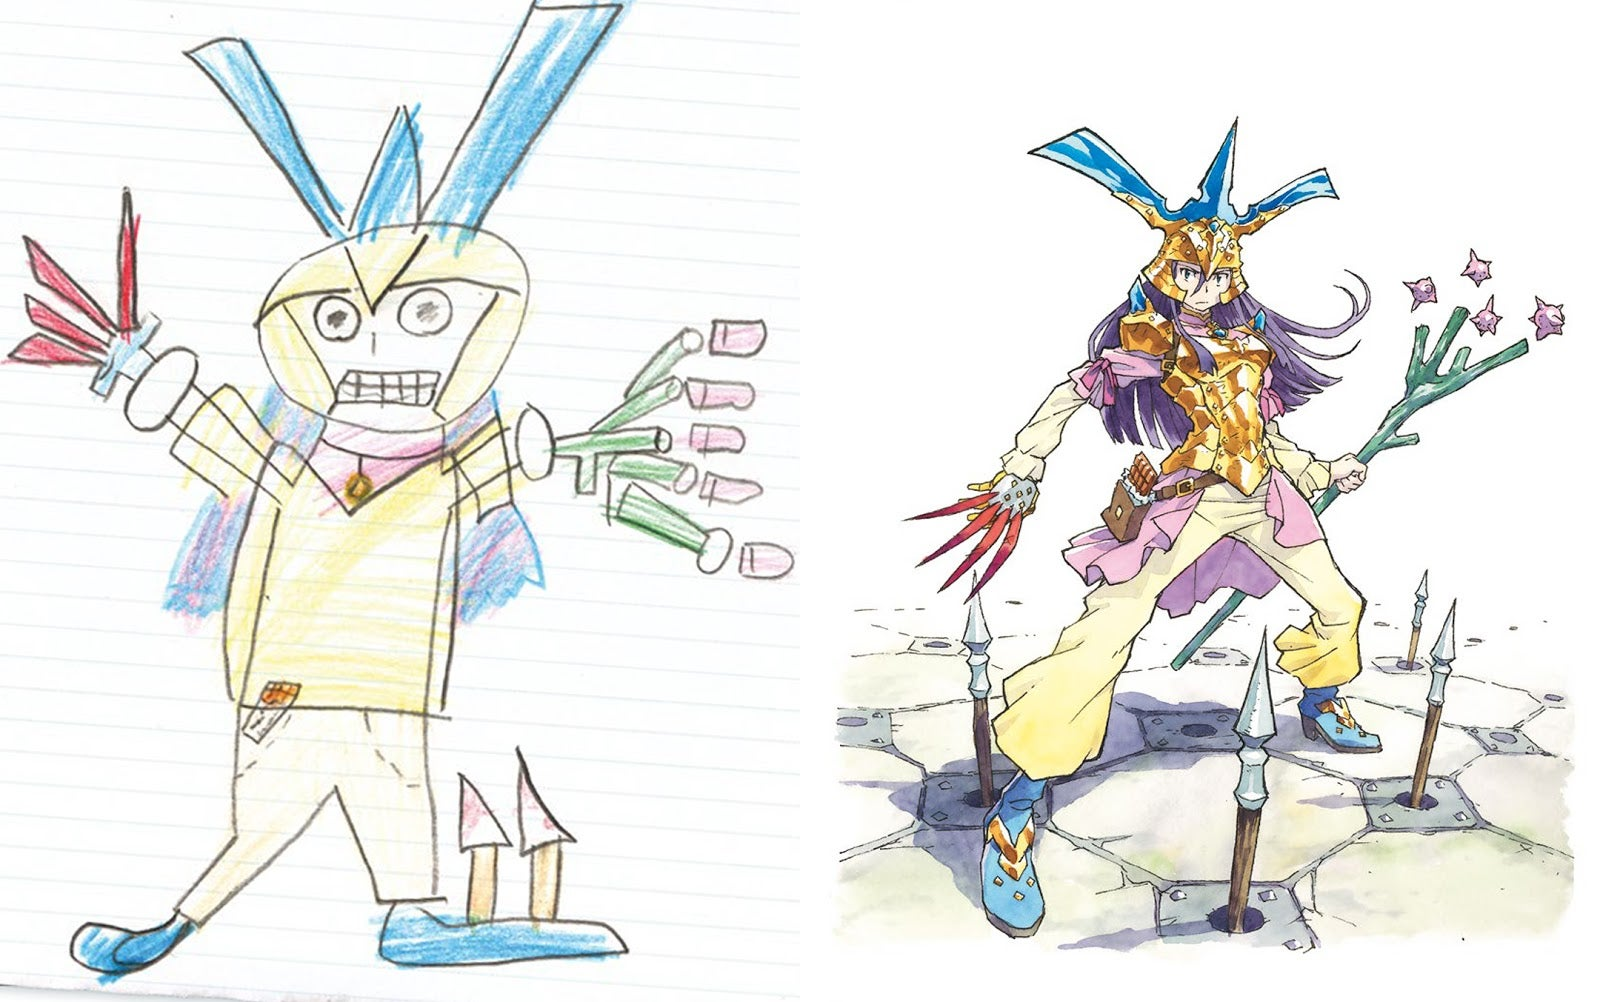 Professional Artist Redraws His Kids' Artwork In Touching Book